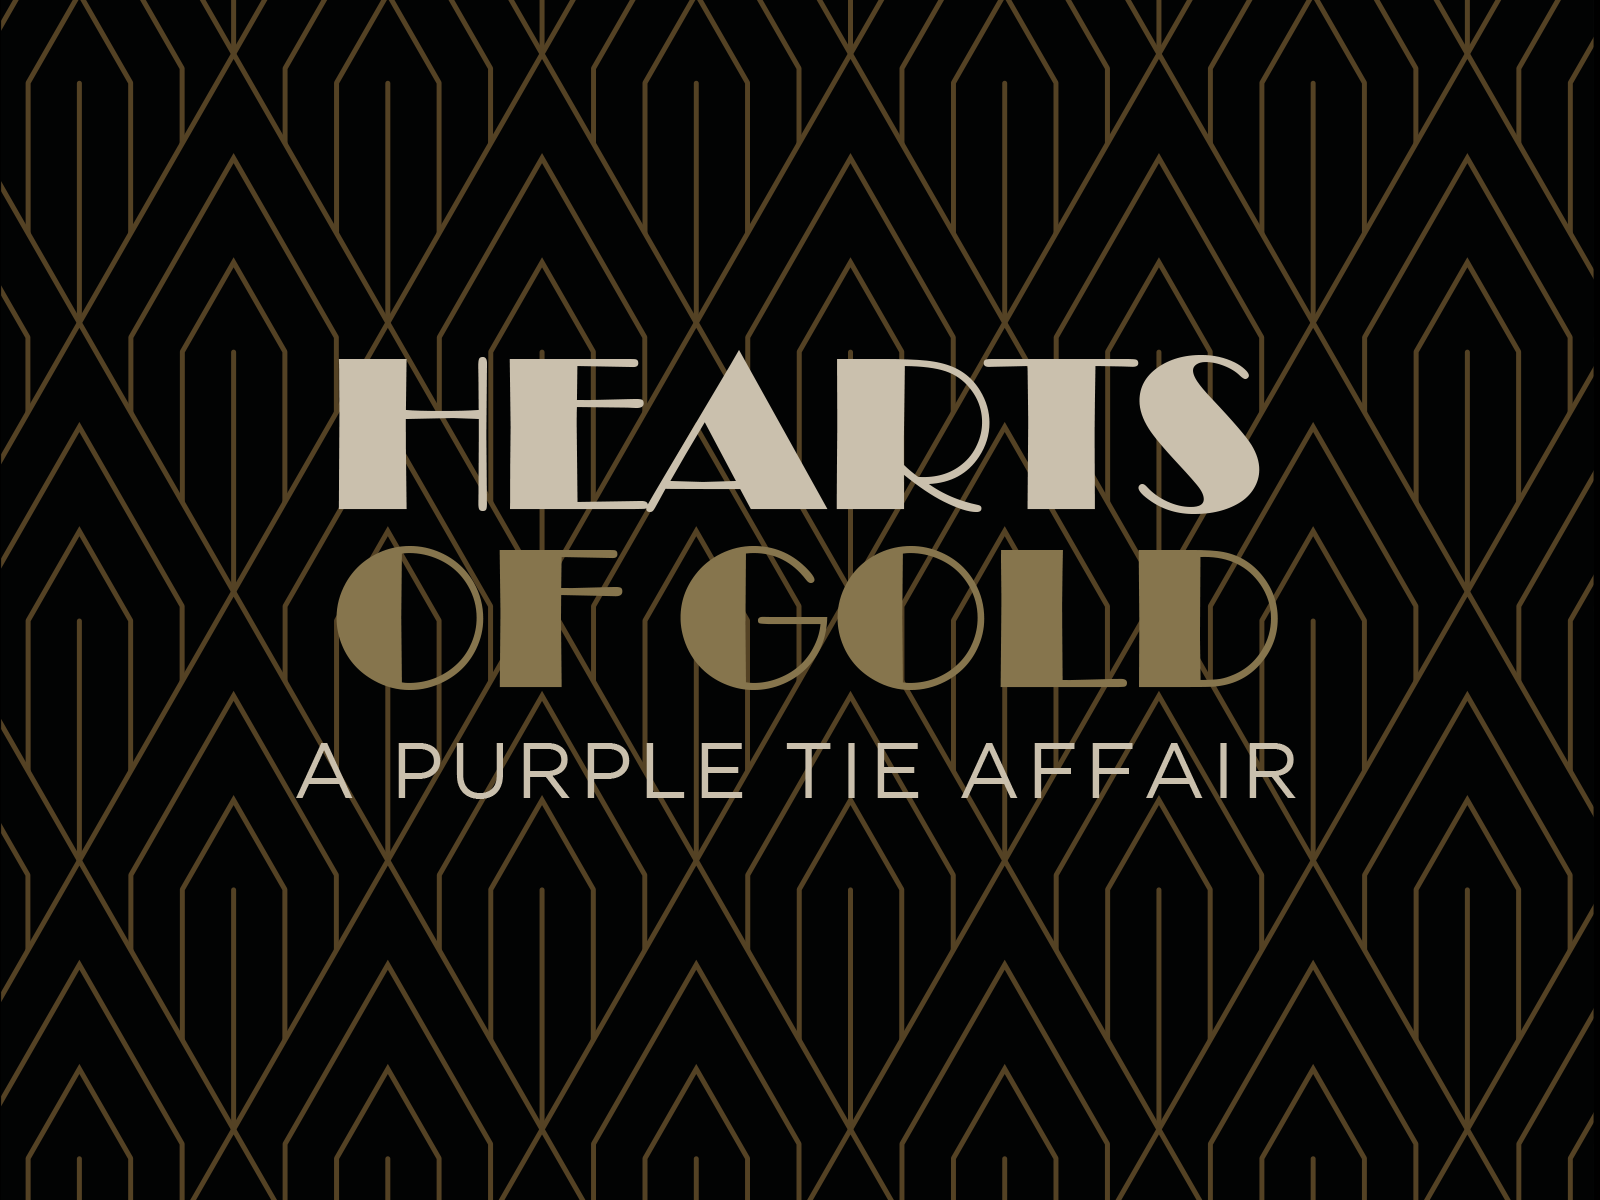 Get Your Tickets for Hearts of Gold 2018!